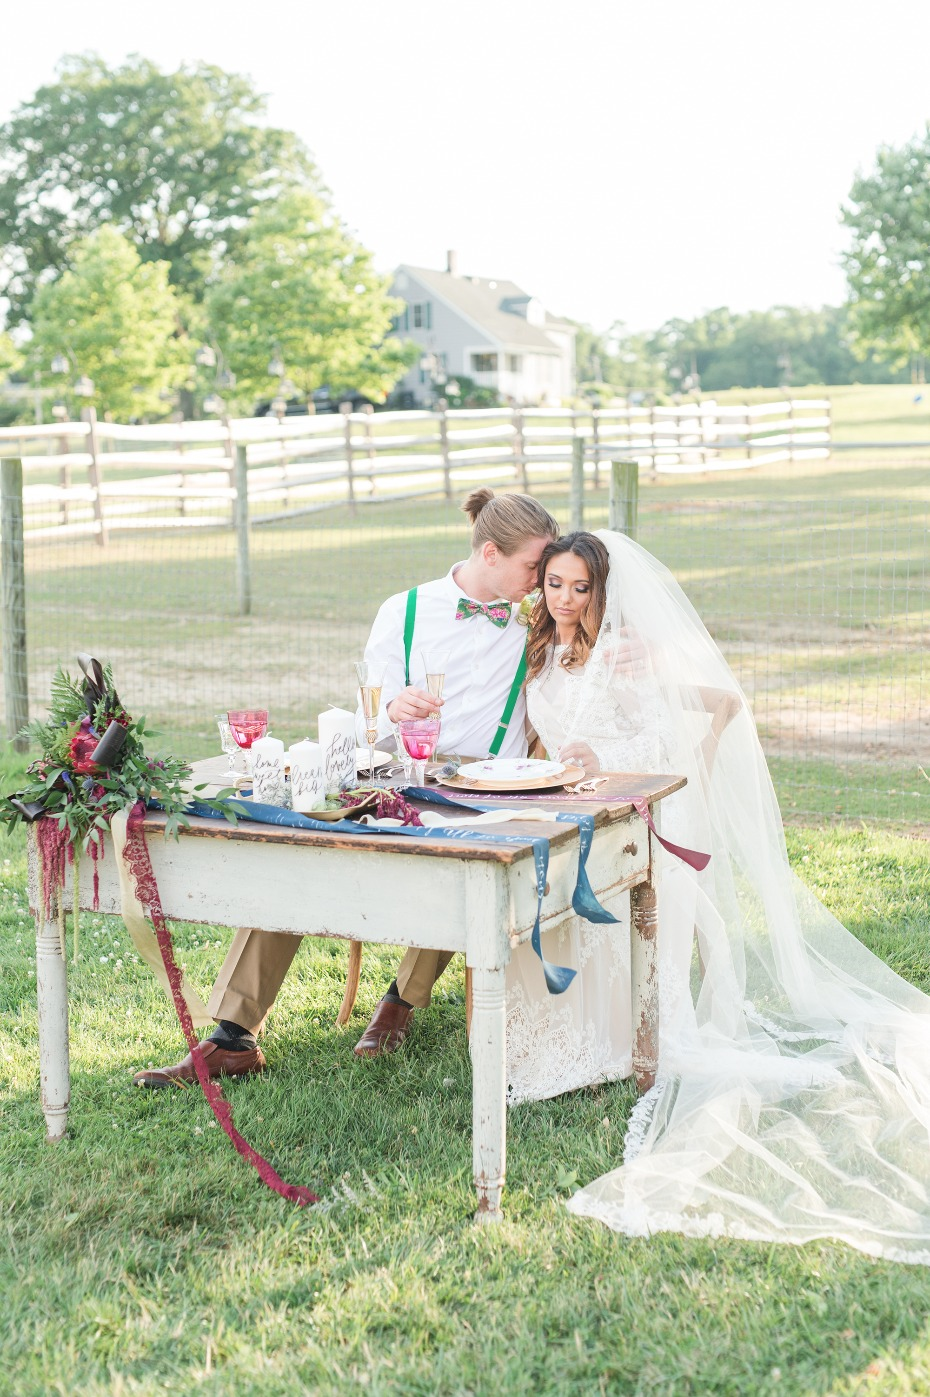 Rustic sweetheart table for two